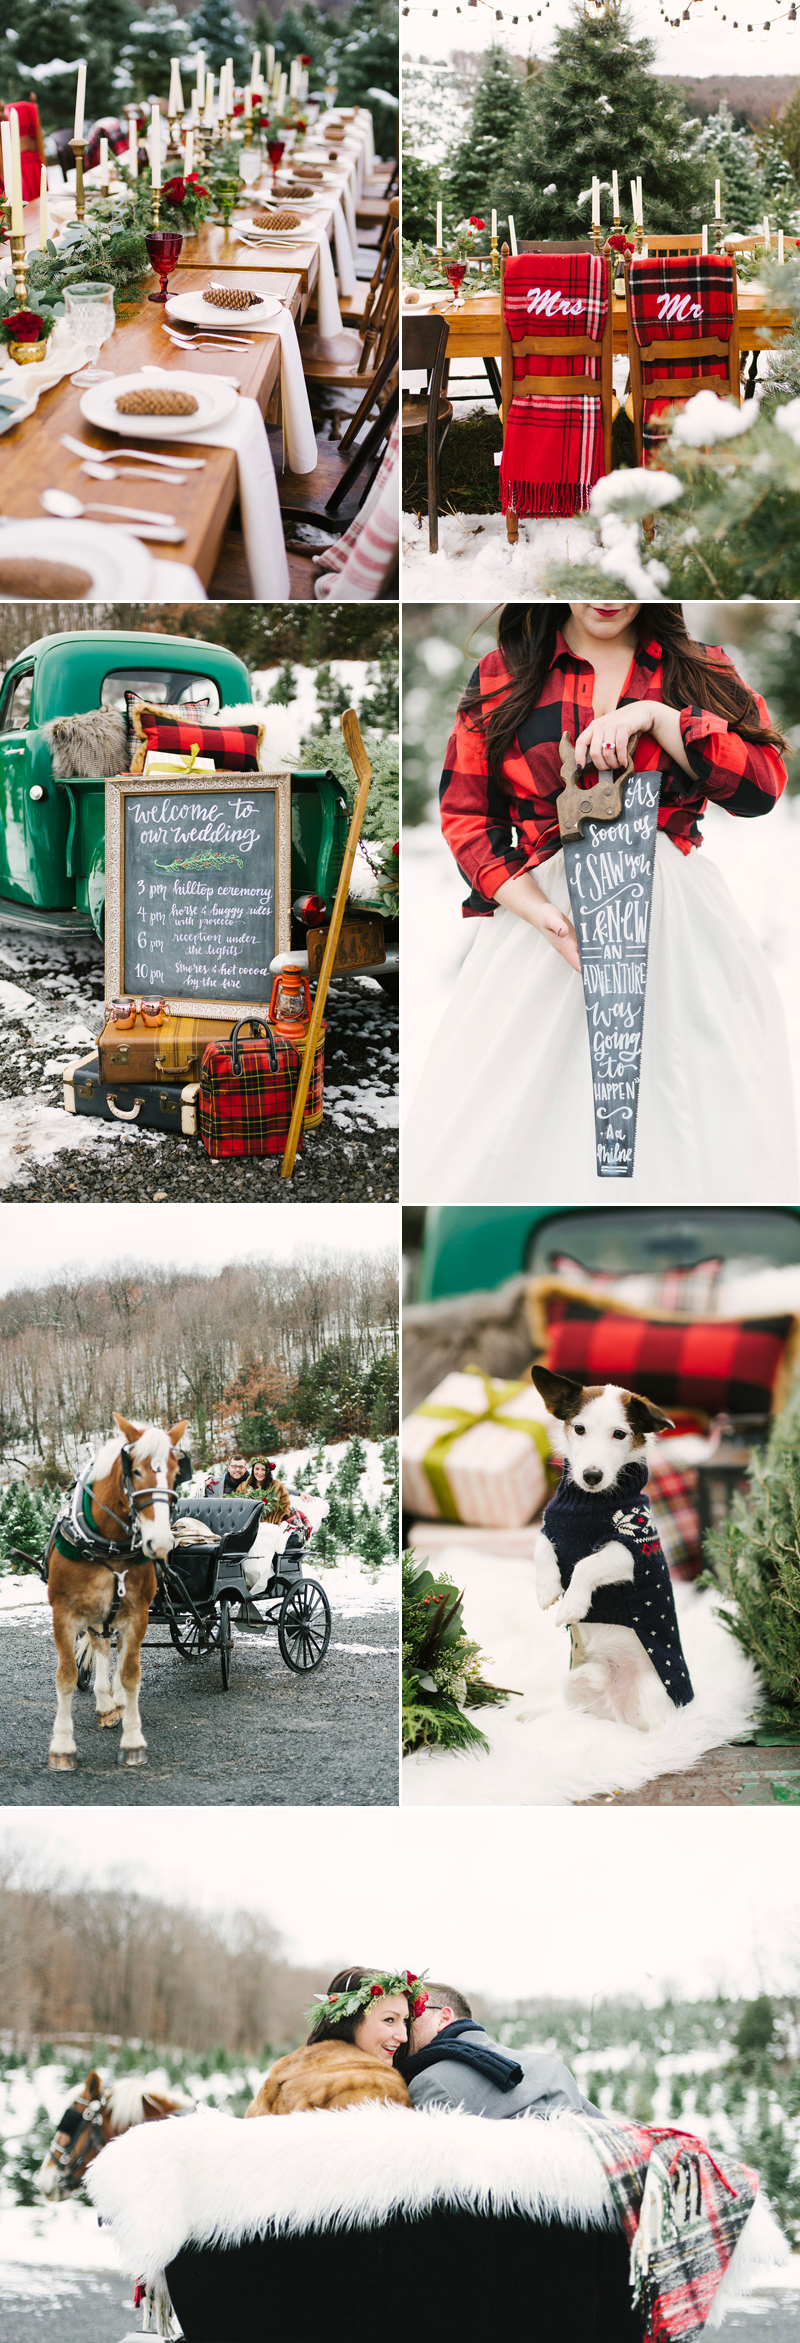 christmas02-Christmas Snowy Tree Farm Wedding (Alicia King Photography)